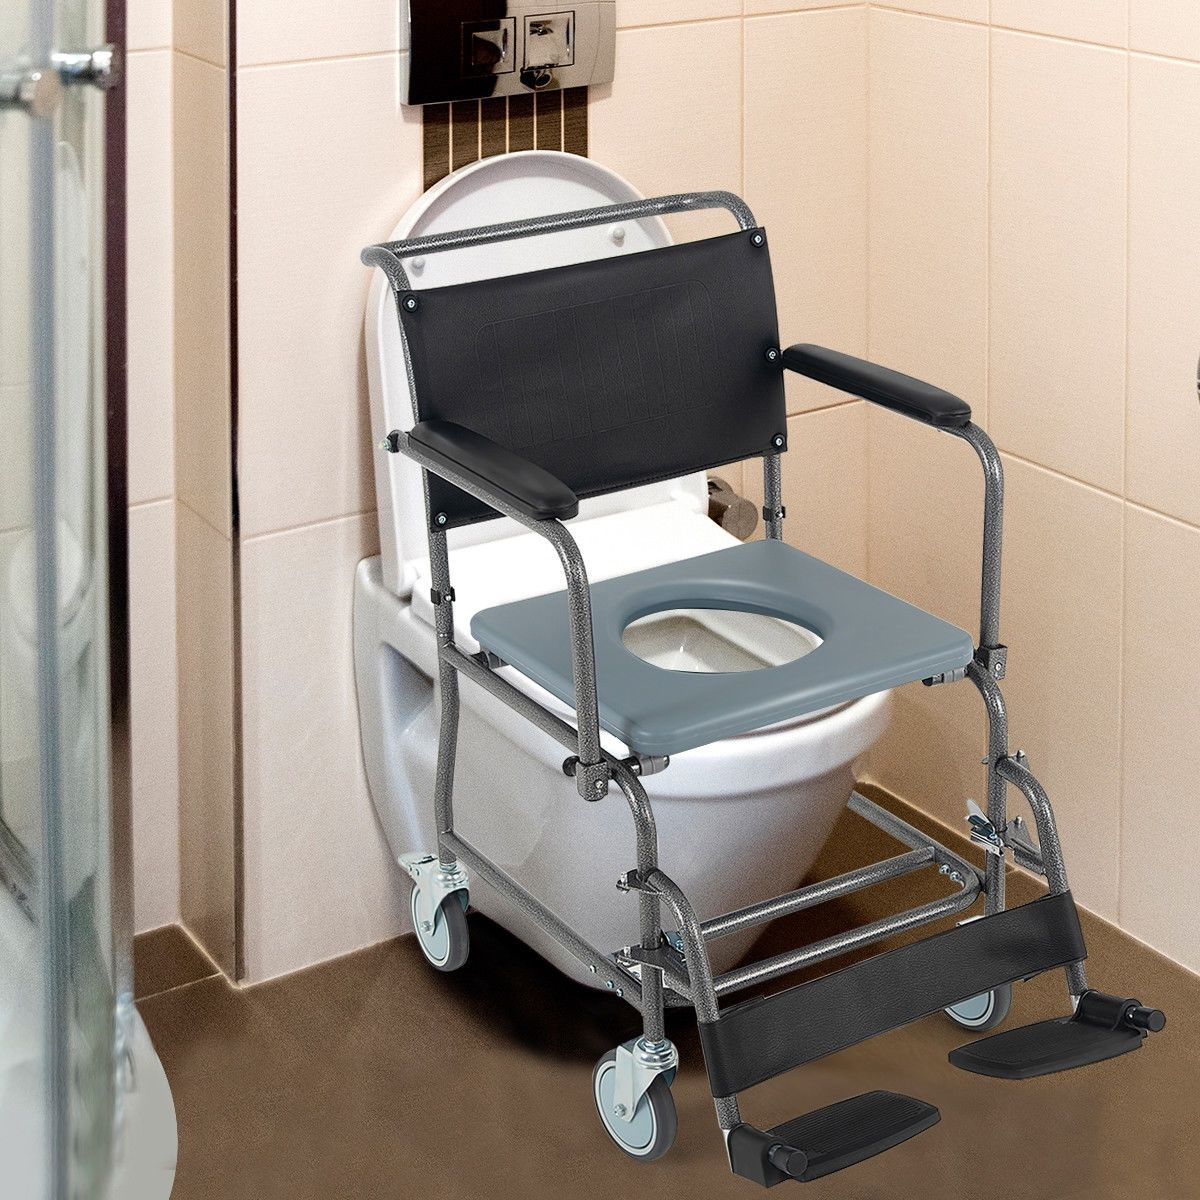 Medical Transport Toilet Commode Wheelchair With Locking Casters Toilet Commode Locking Casters Wheelchair